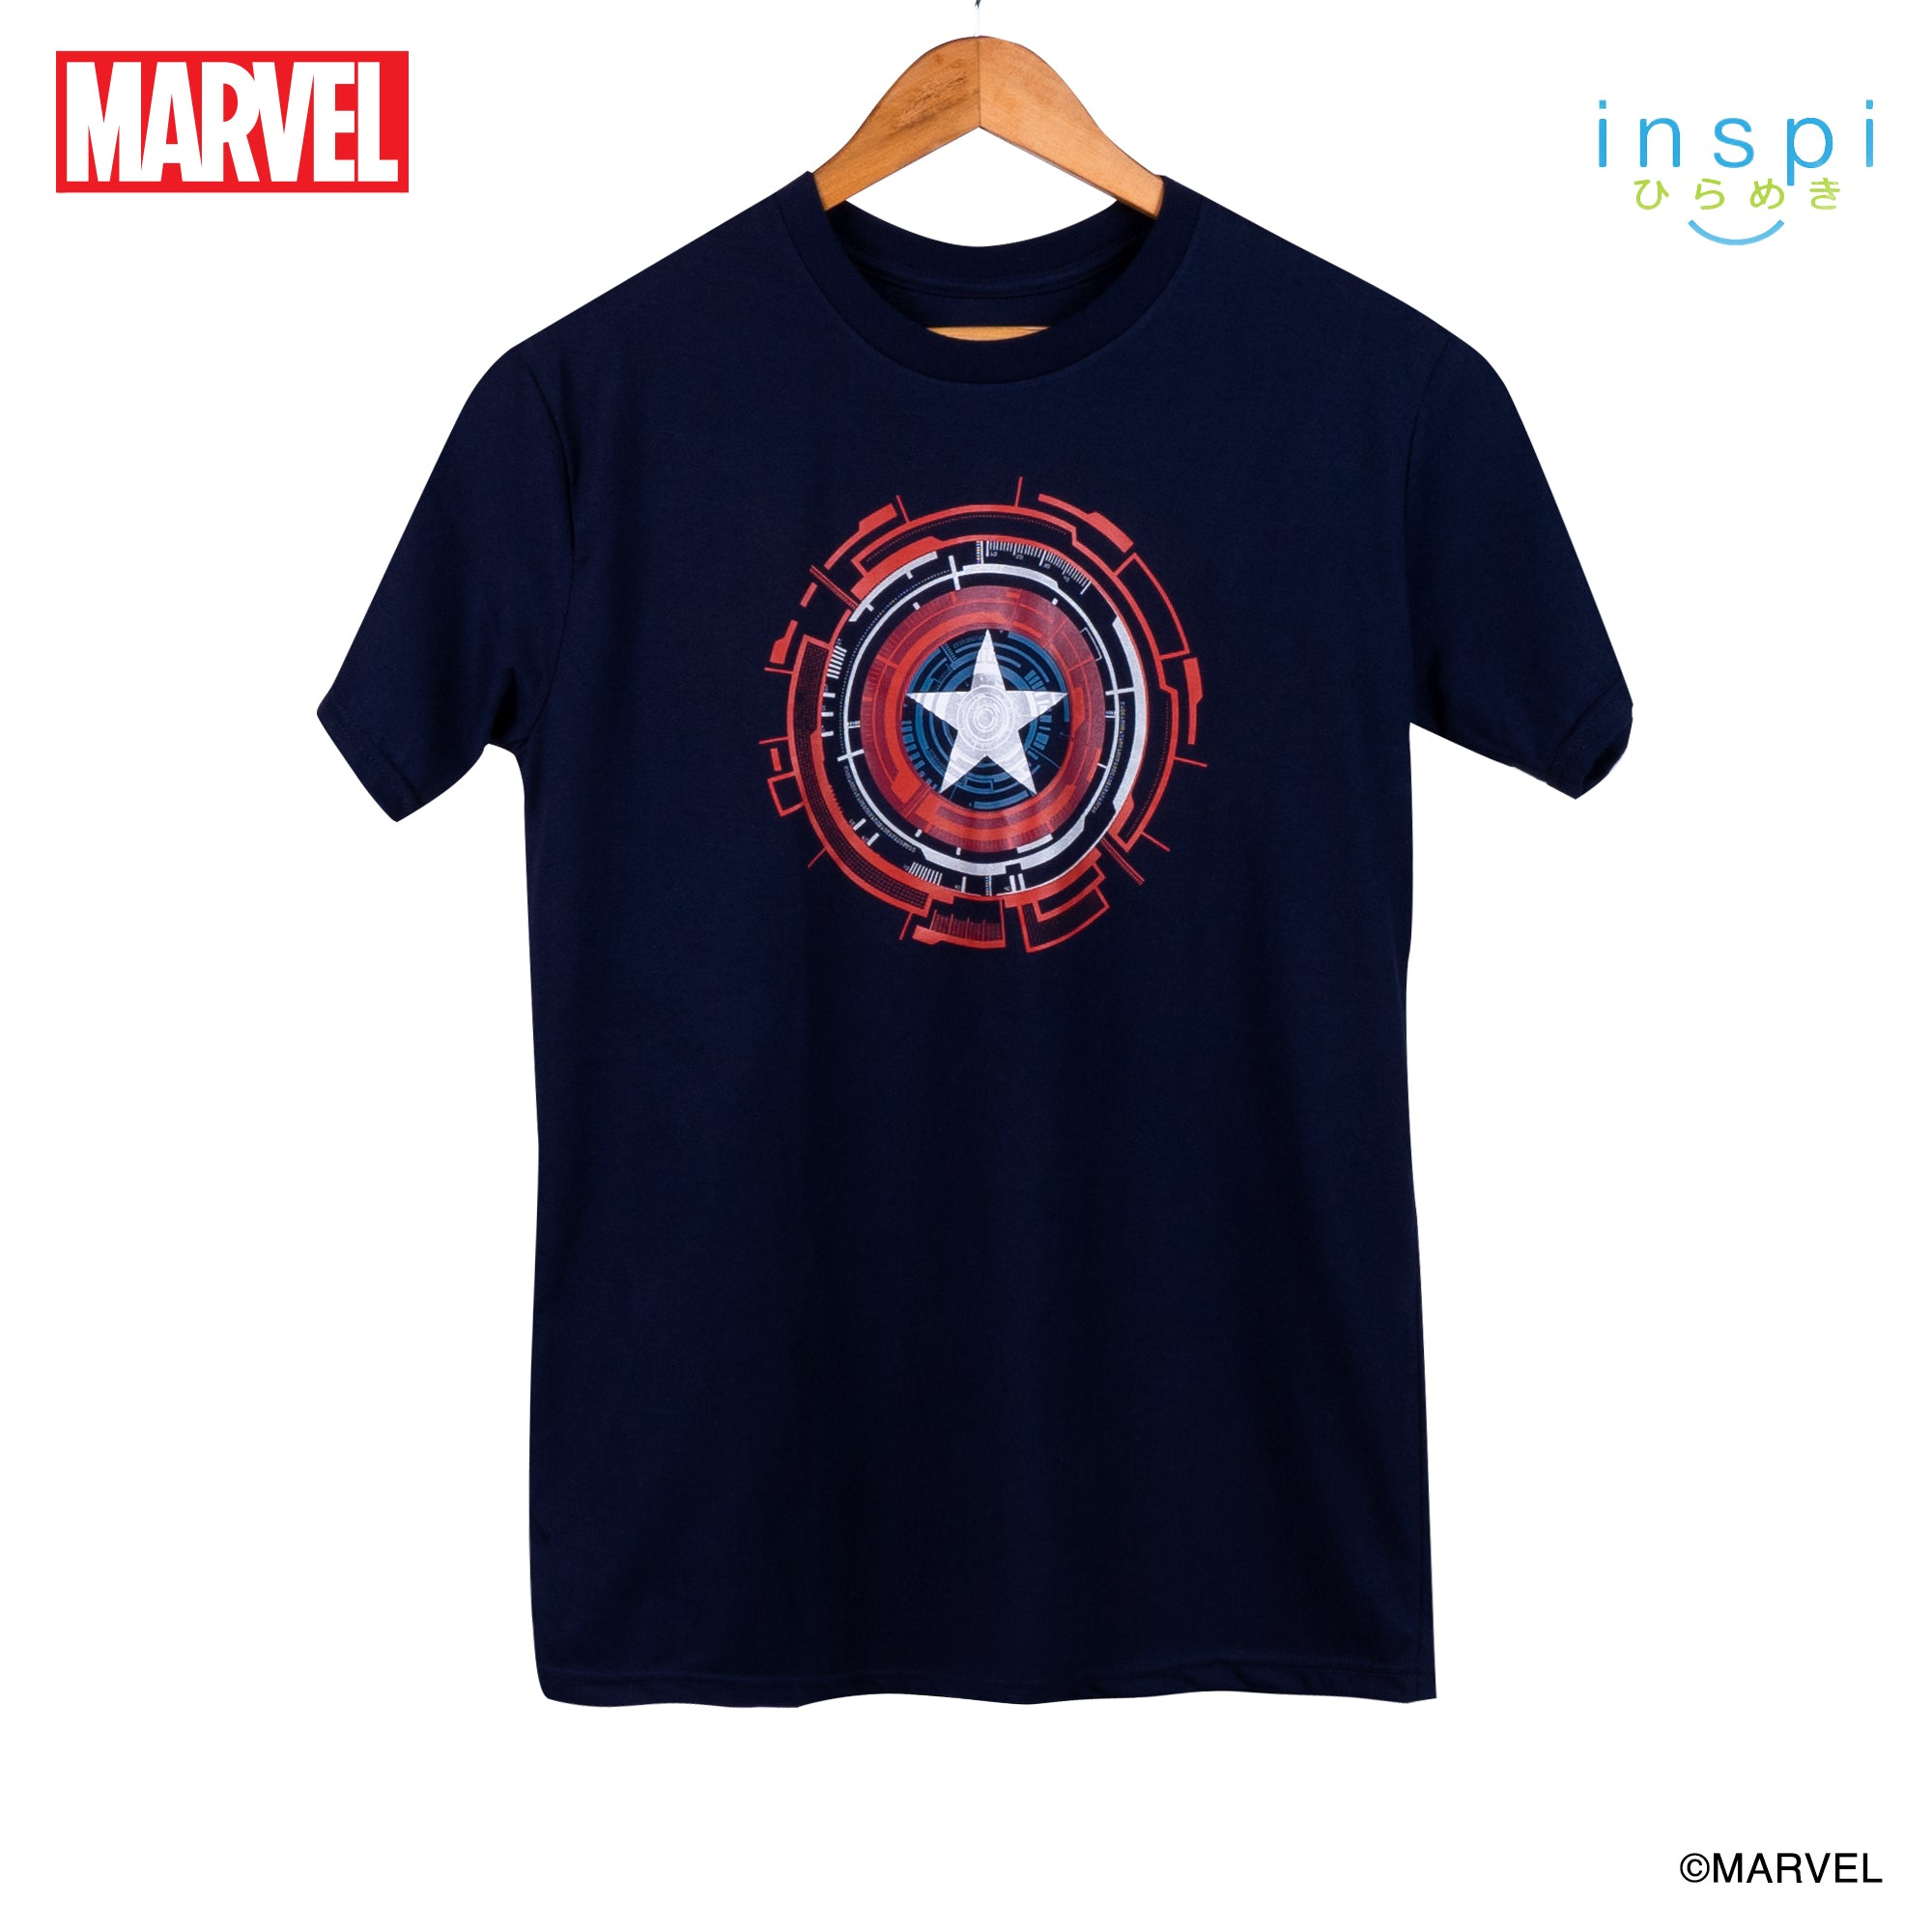 Marvel Captain America Logo Graphic Tshirt in Navy Blue for Men and for Women Inspi Shirt